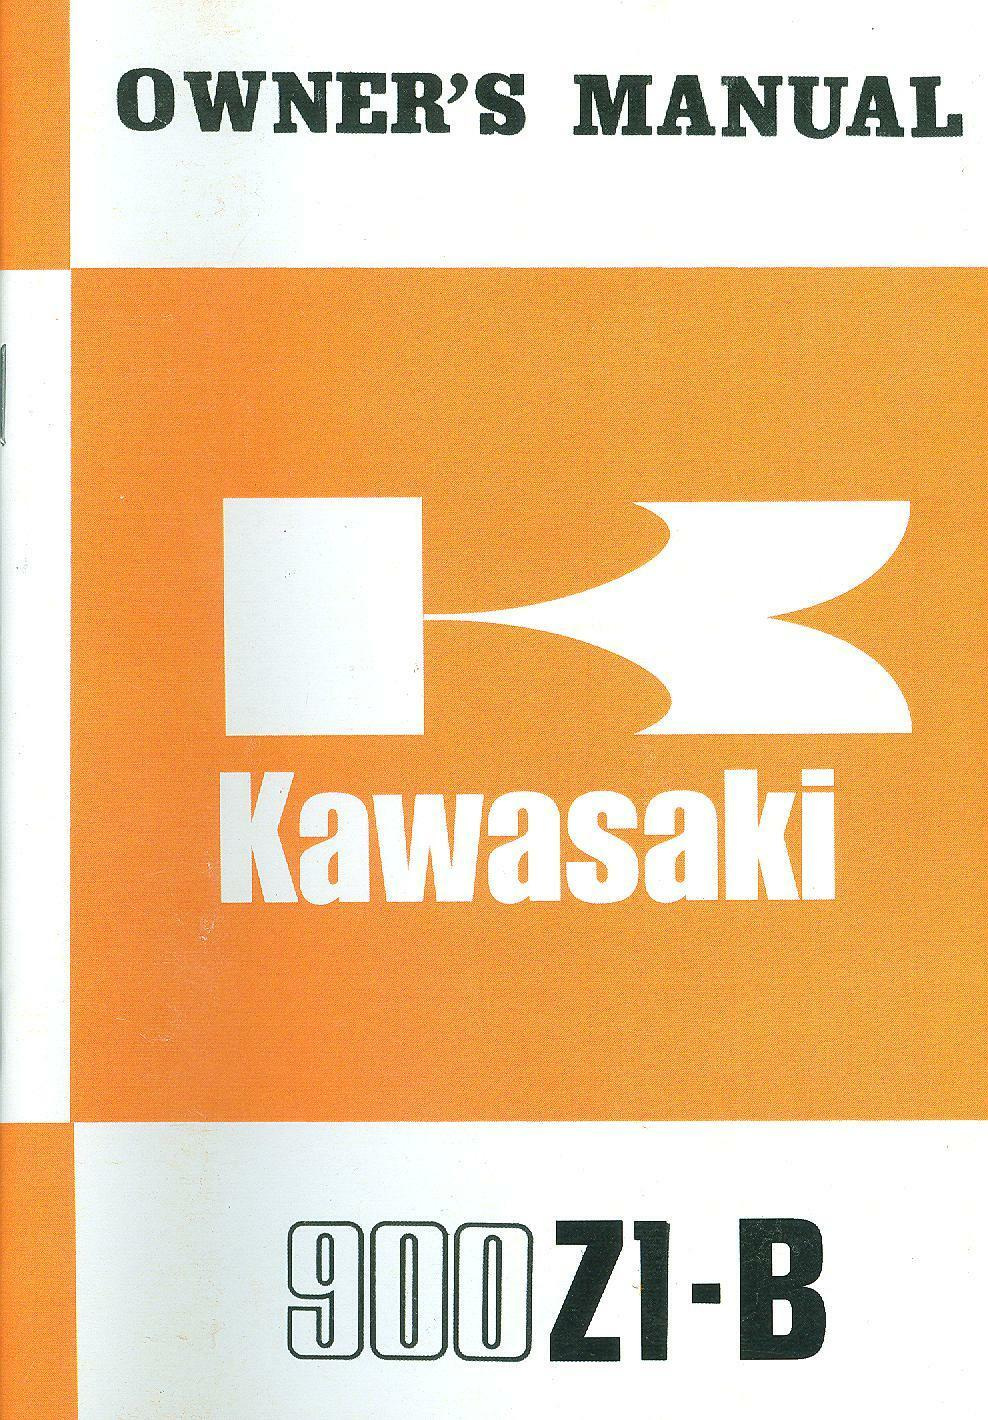 1975 Kawasaki 900 Z1 B Owners Manual 7495 Picclick Z900 A4 Wiring Diagram 1 Of 1only 3 Available